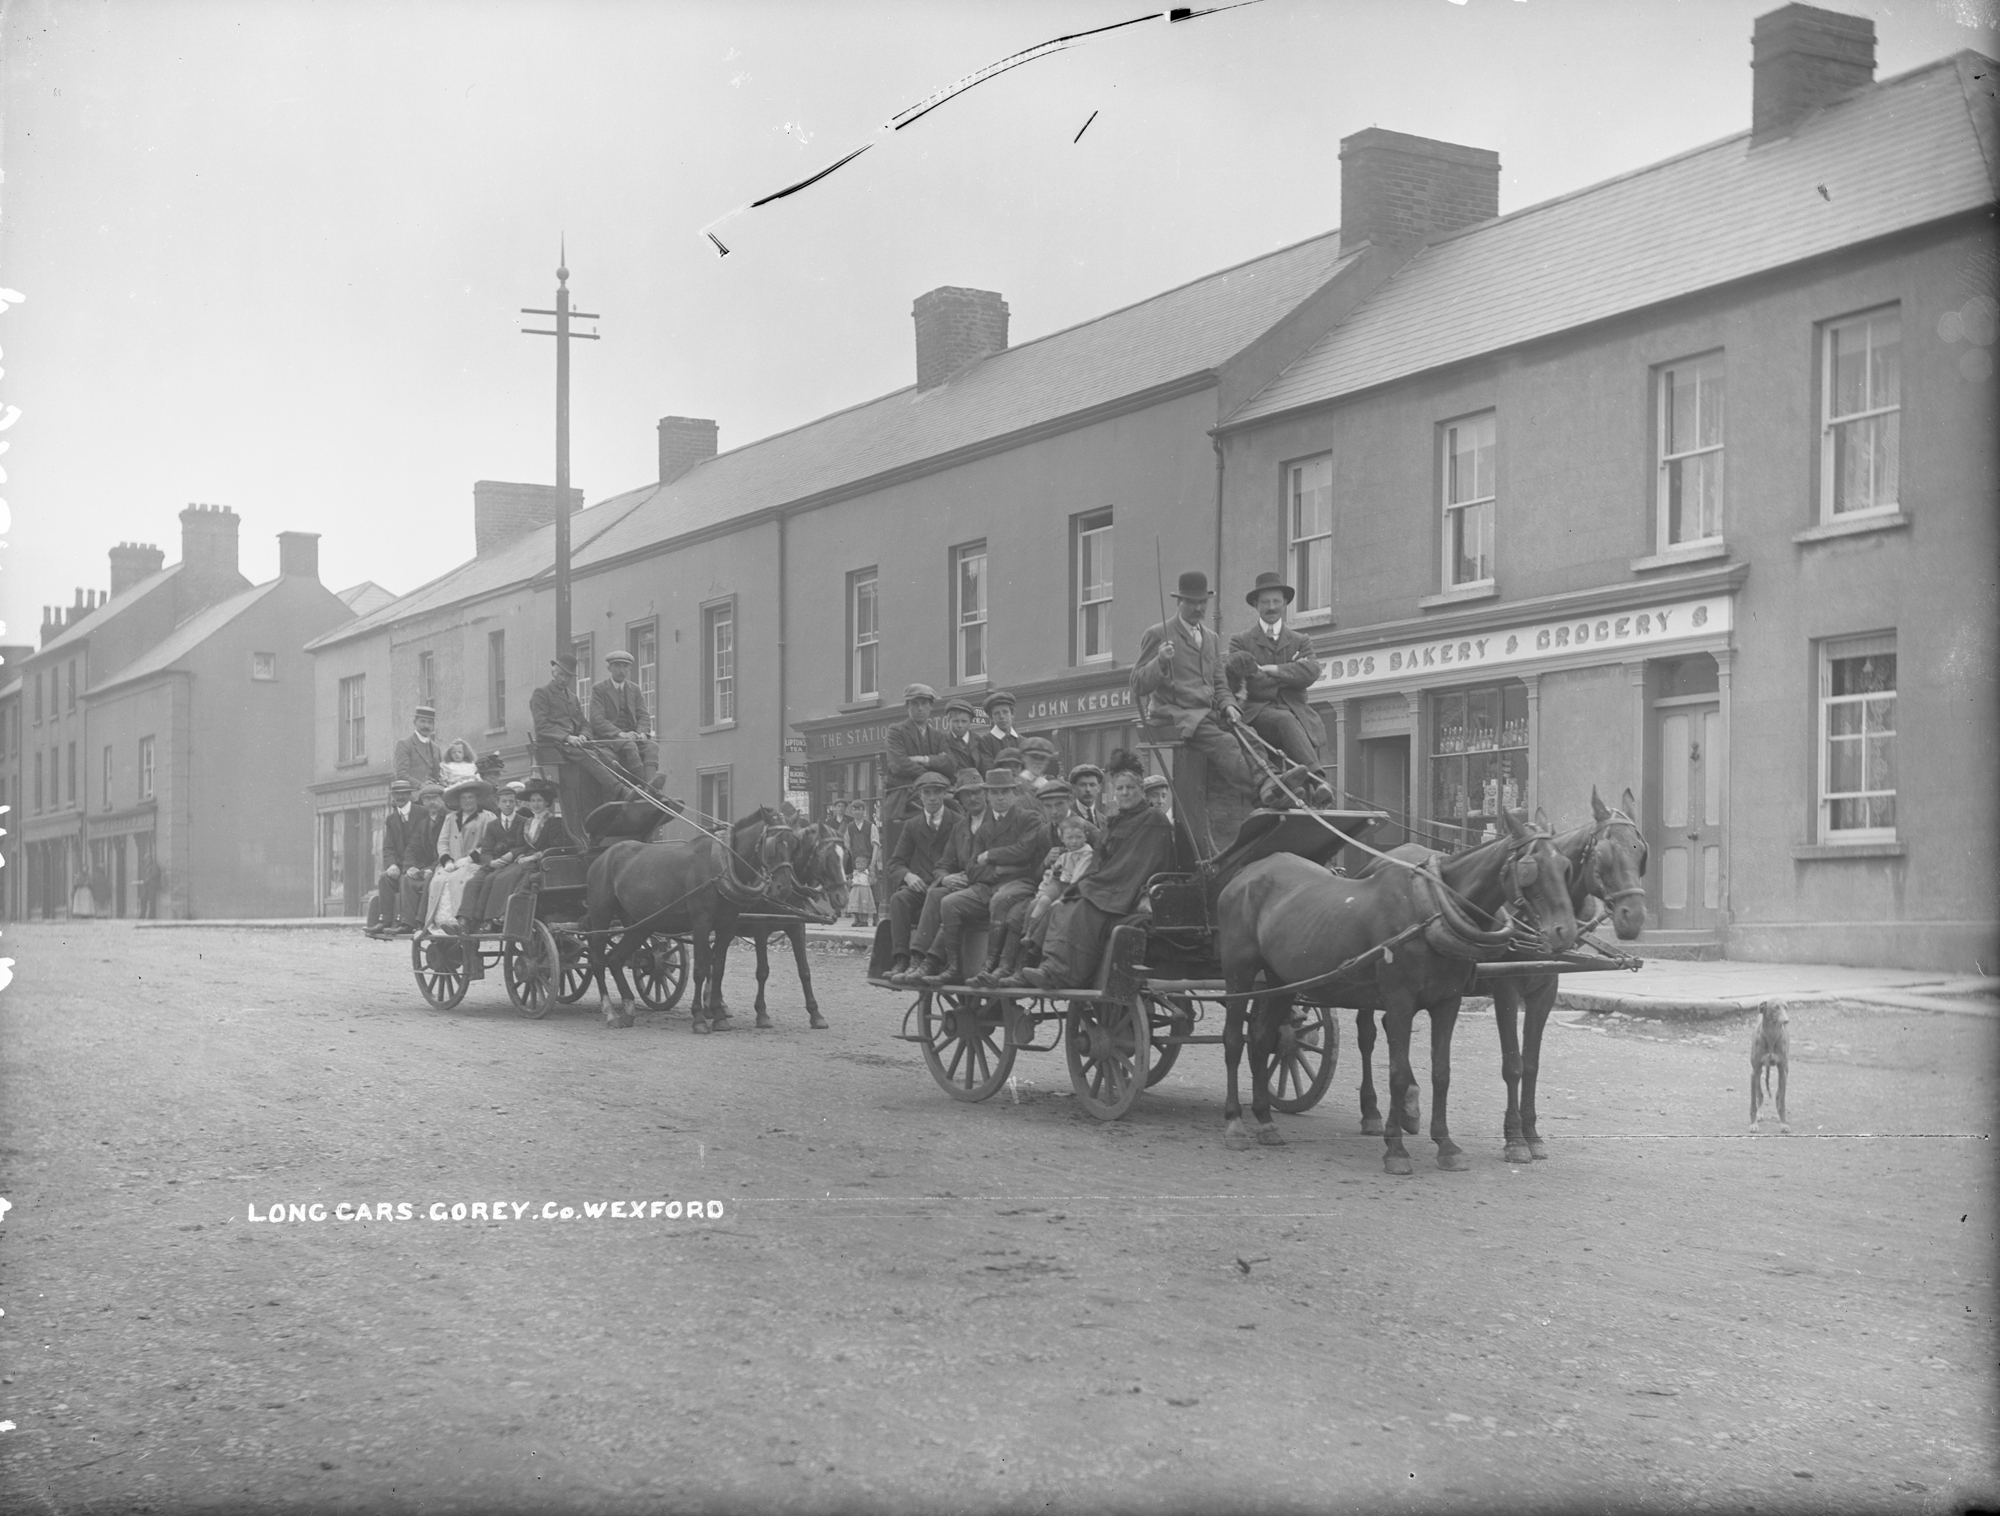 Long Cars, Gorey, Co. Wexford